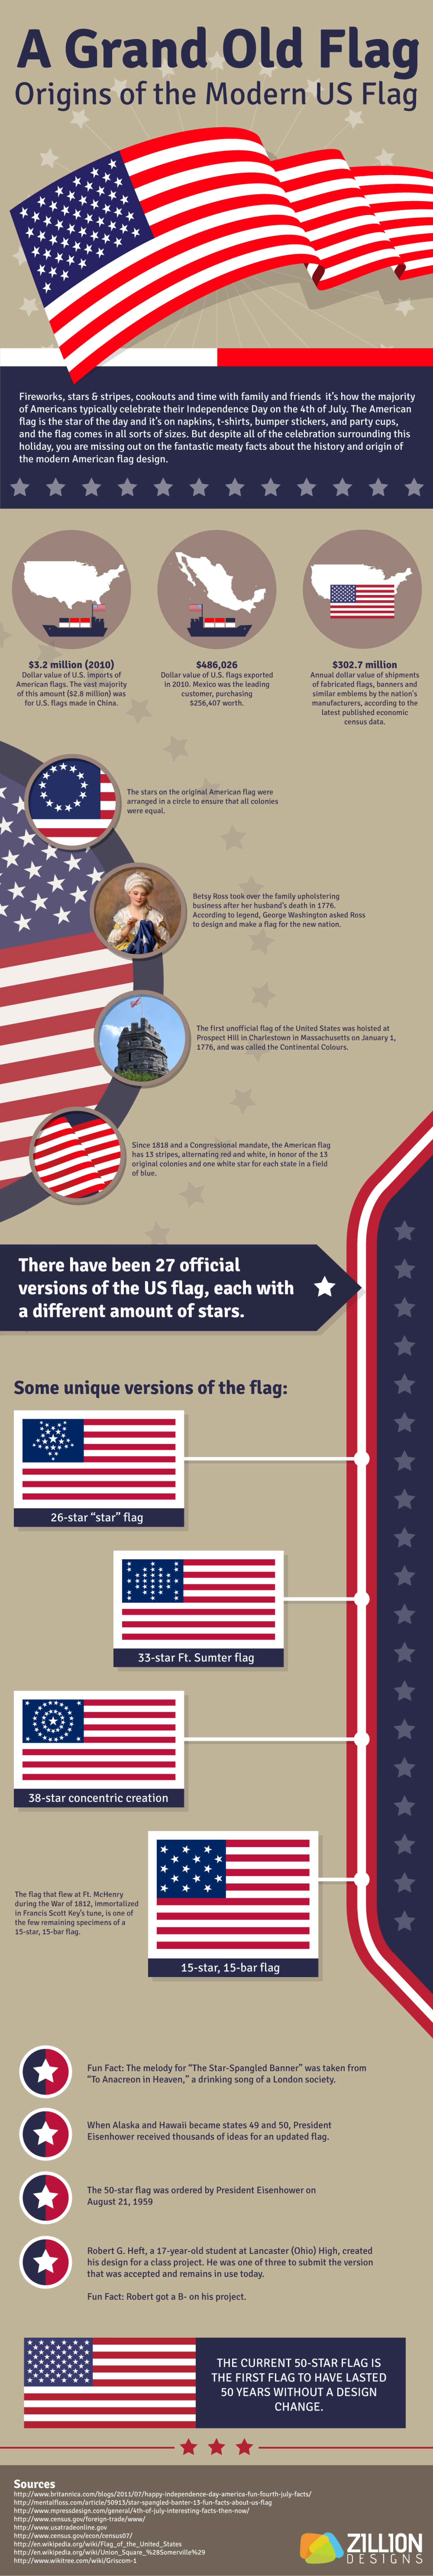 A Grand Old Flag: Origins of the Modern US Flag Infographic